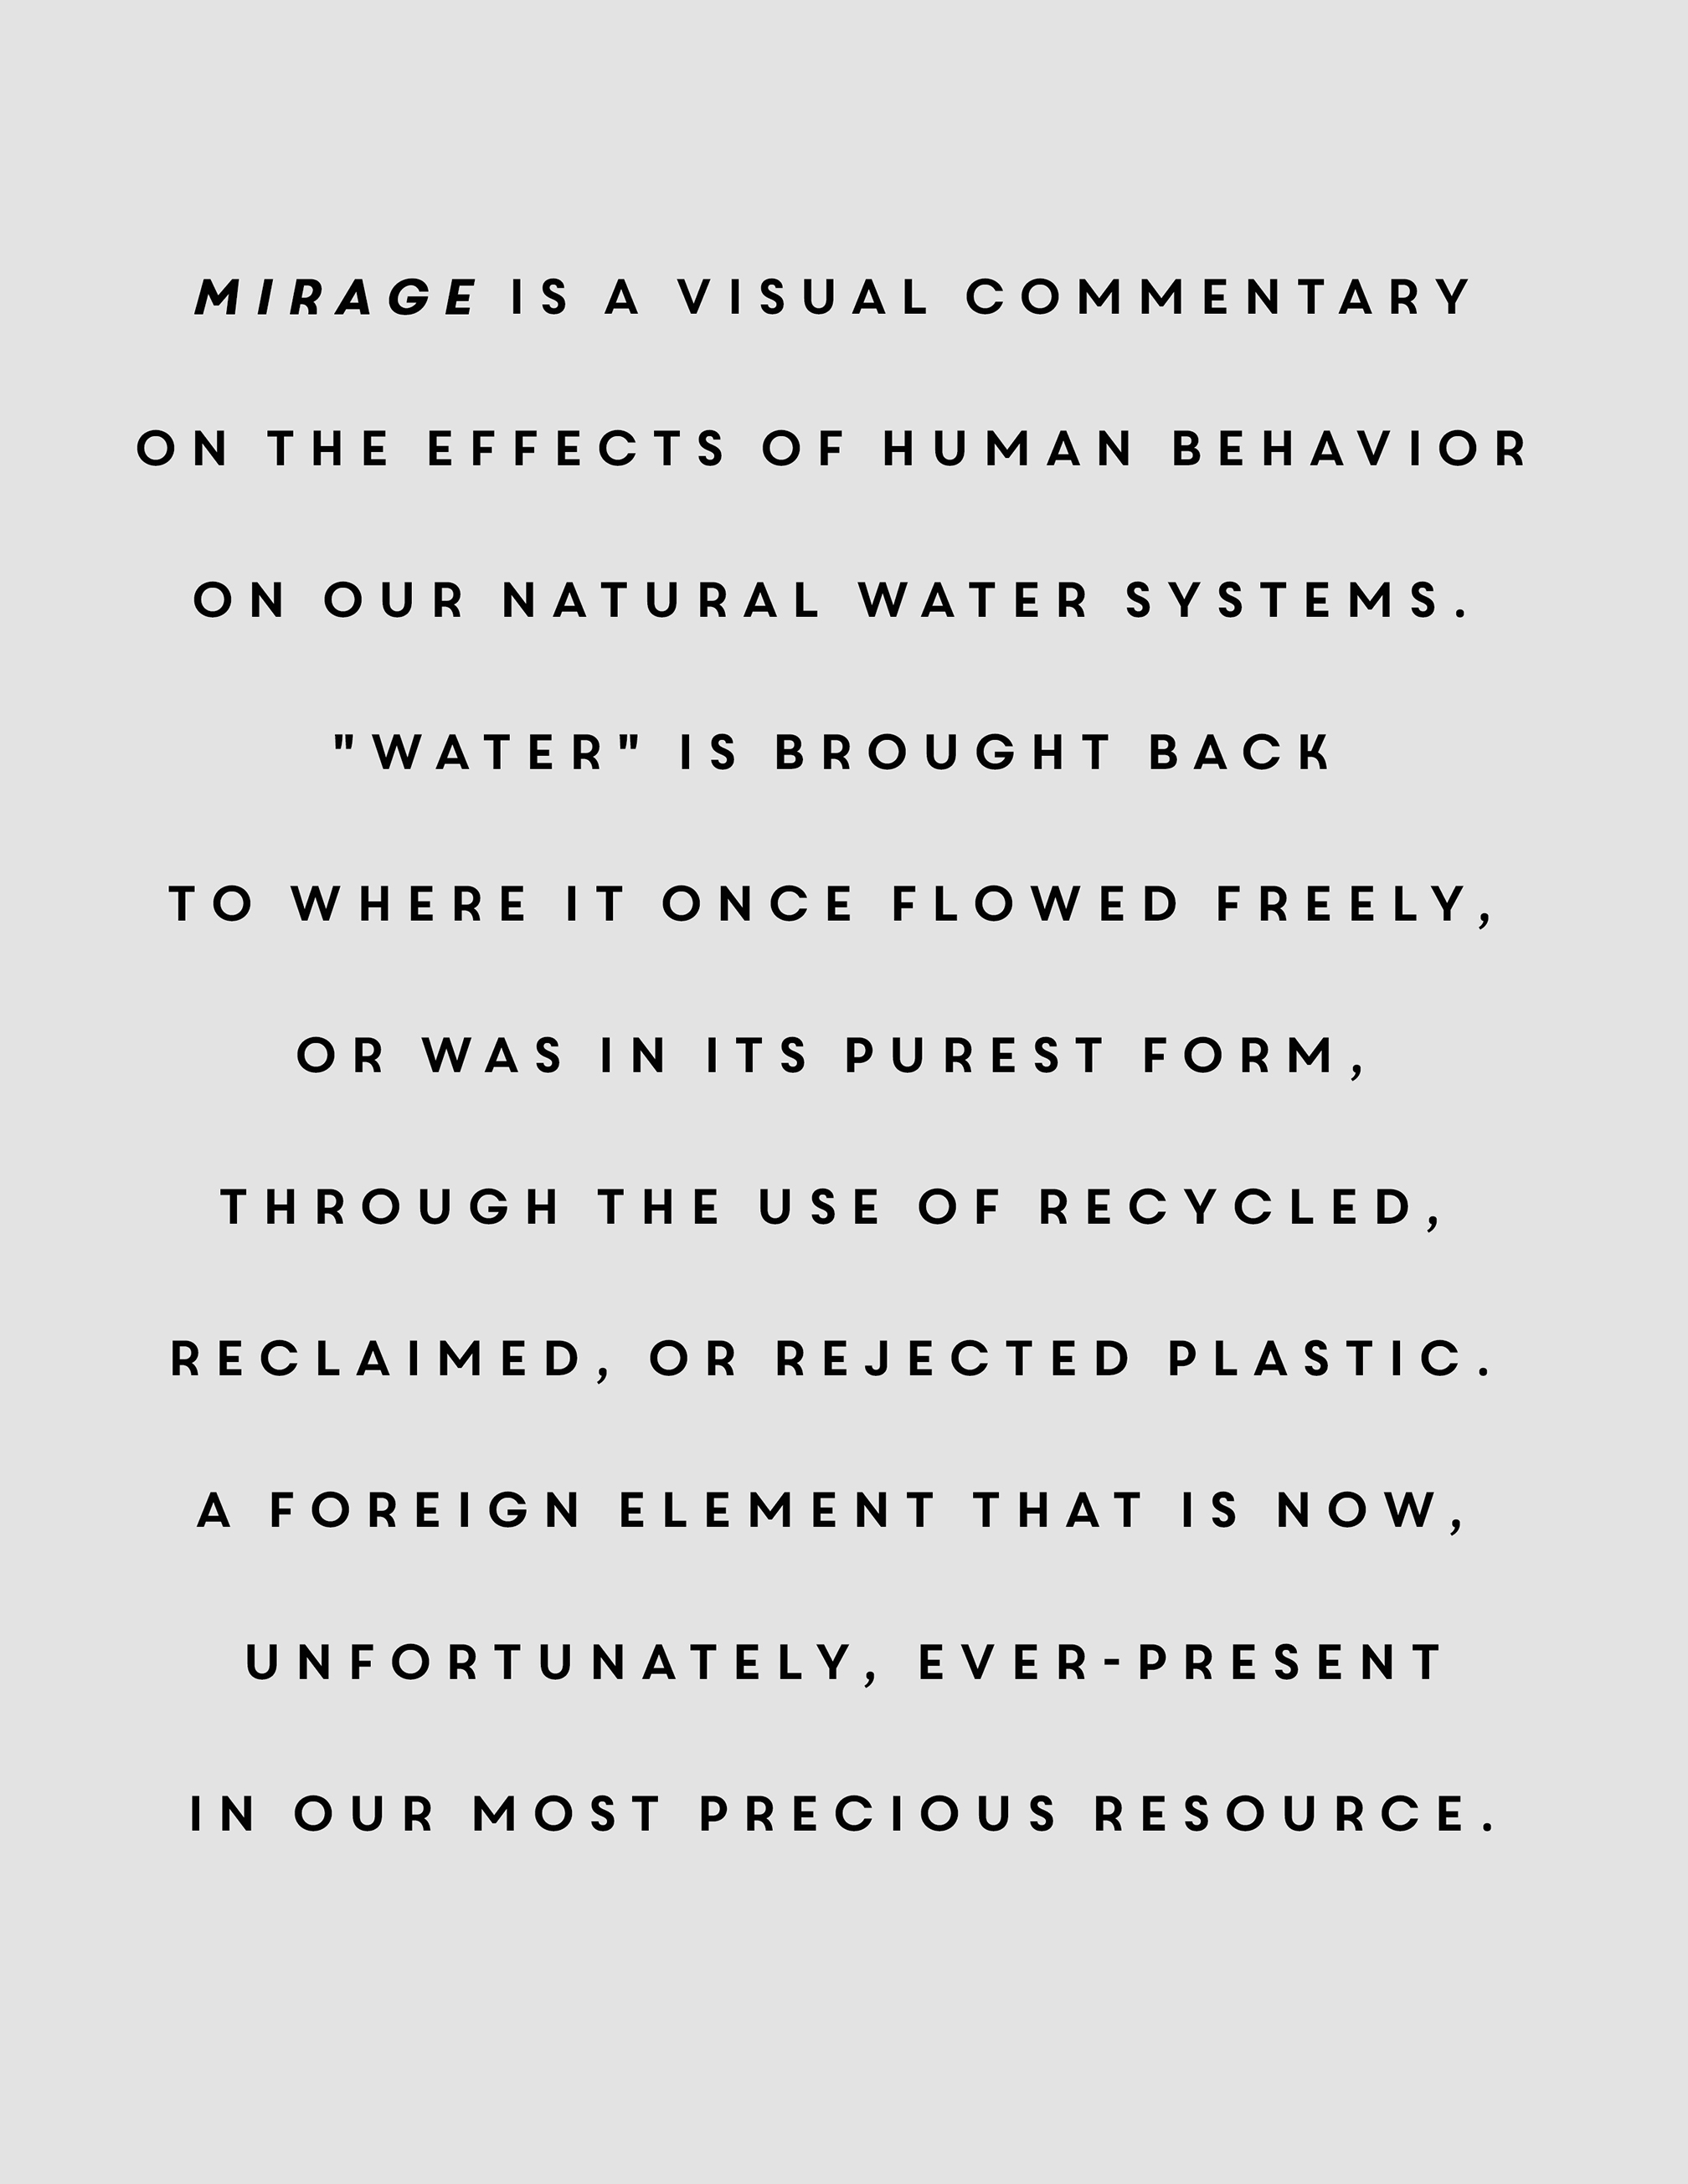 Mirage-text__at__2x